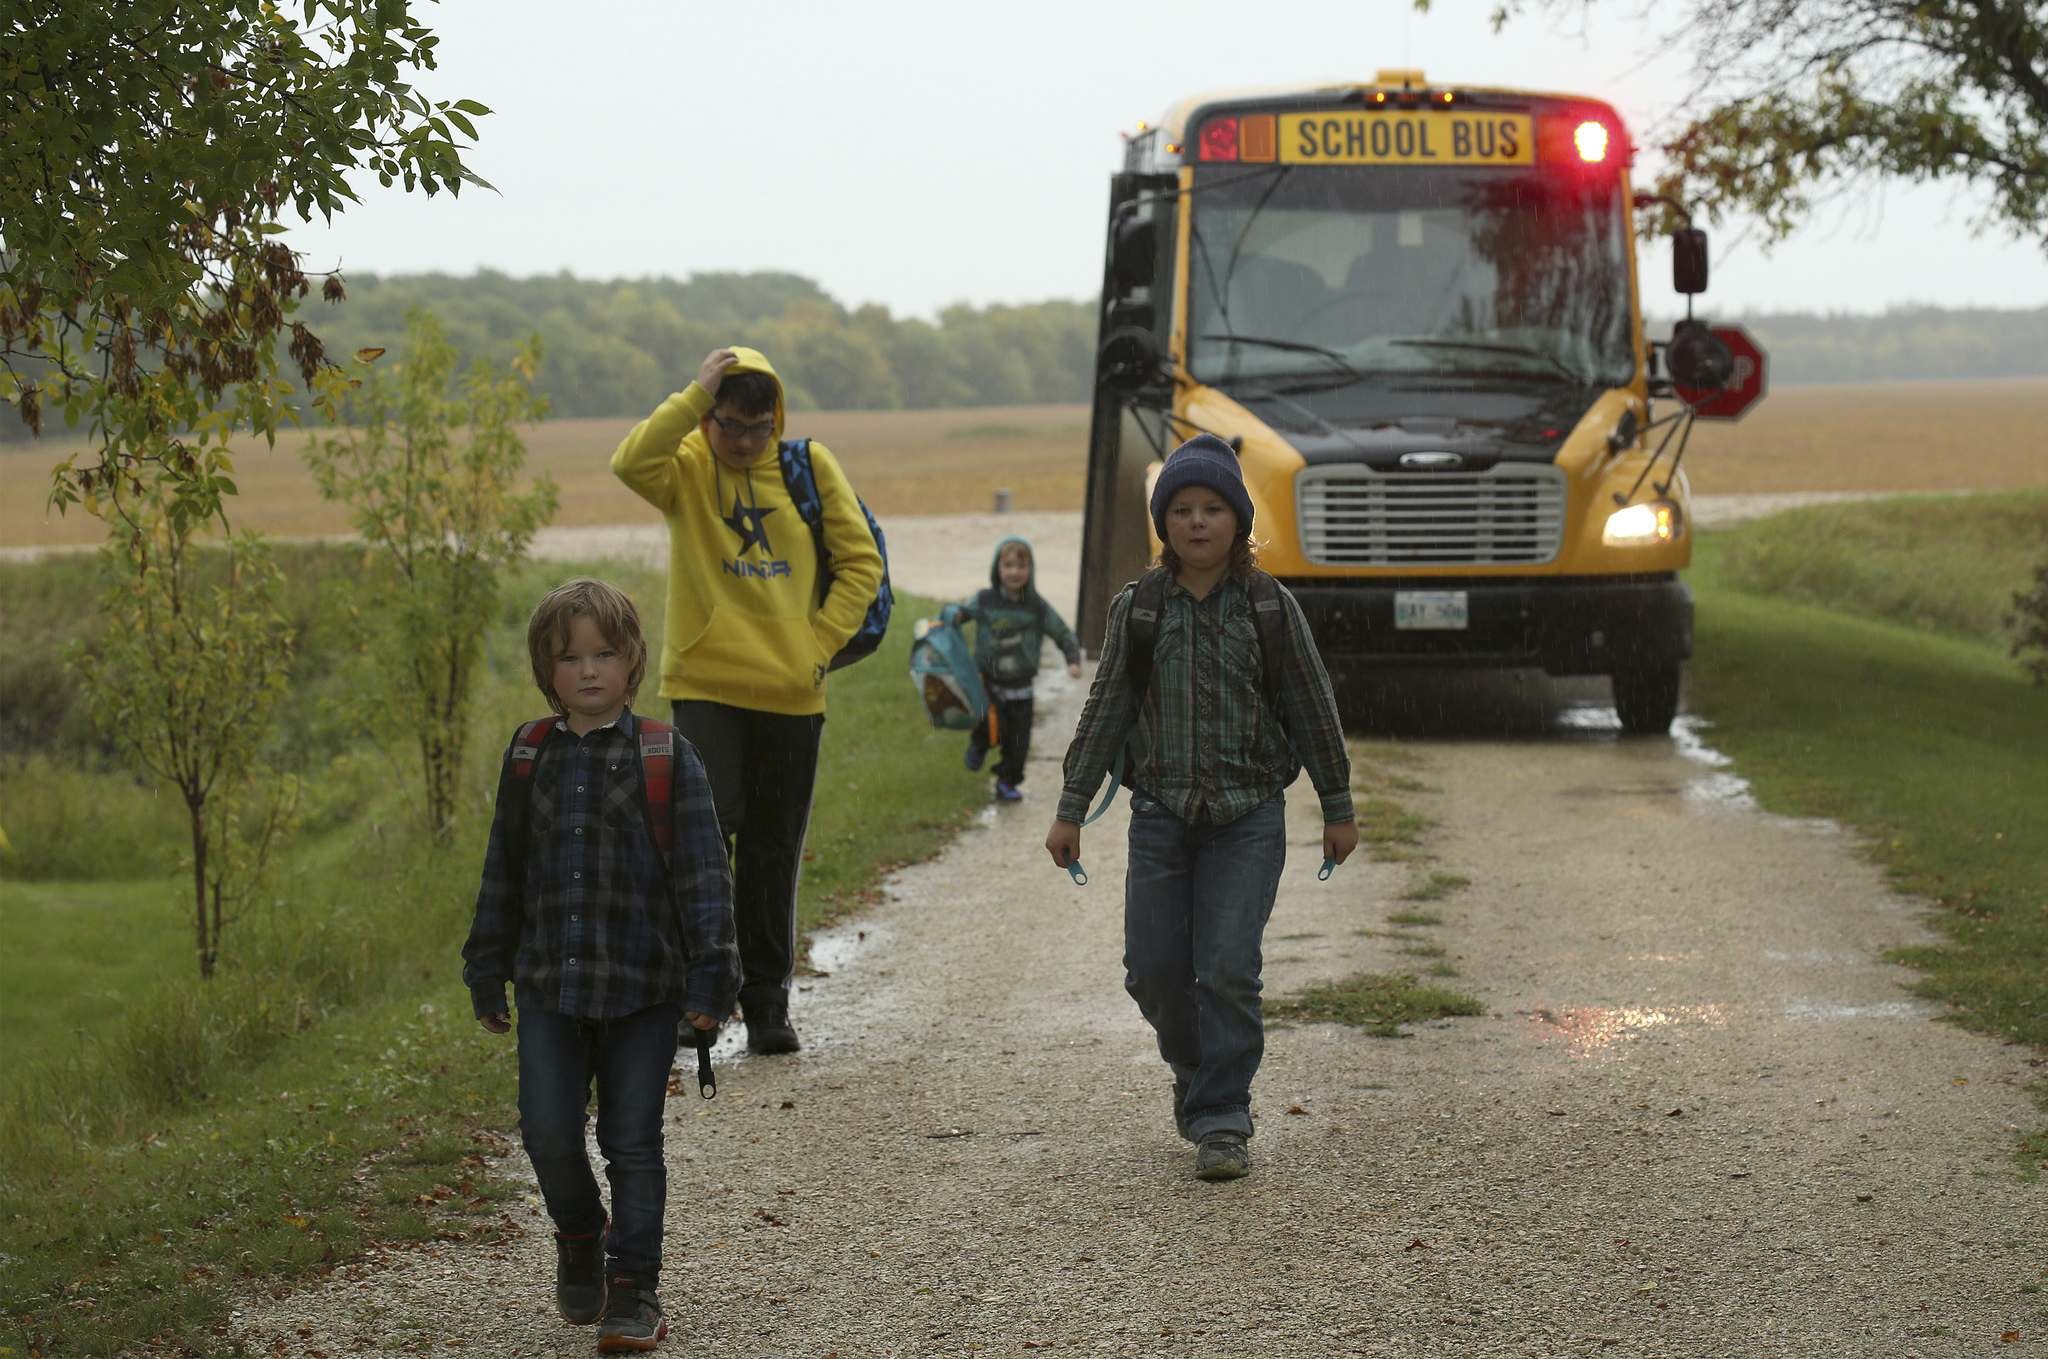 SHANNON VANRAES / WINNIPEG FREE PRESS</p><p>The Thiessen boys are dropped off at the end of the school day.</p>